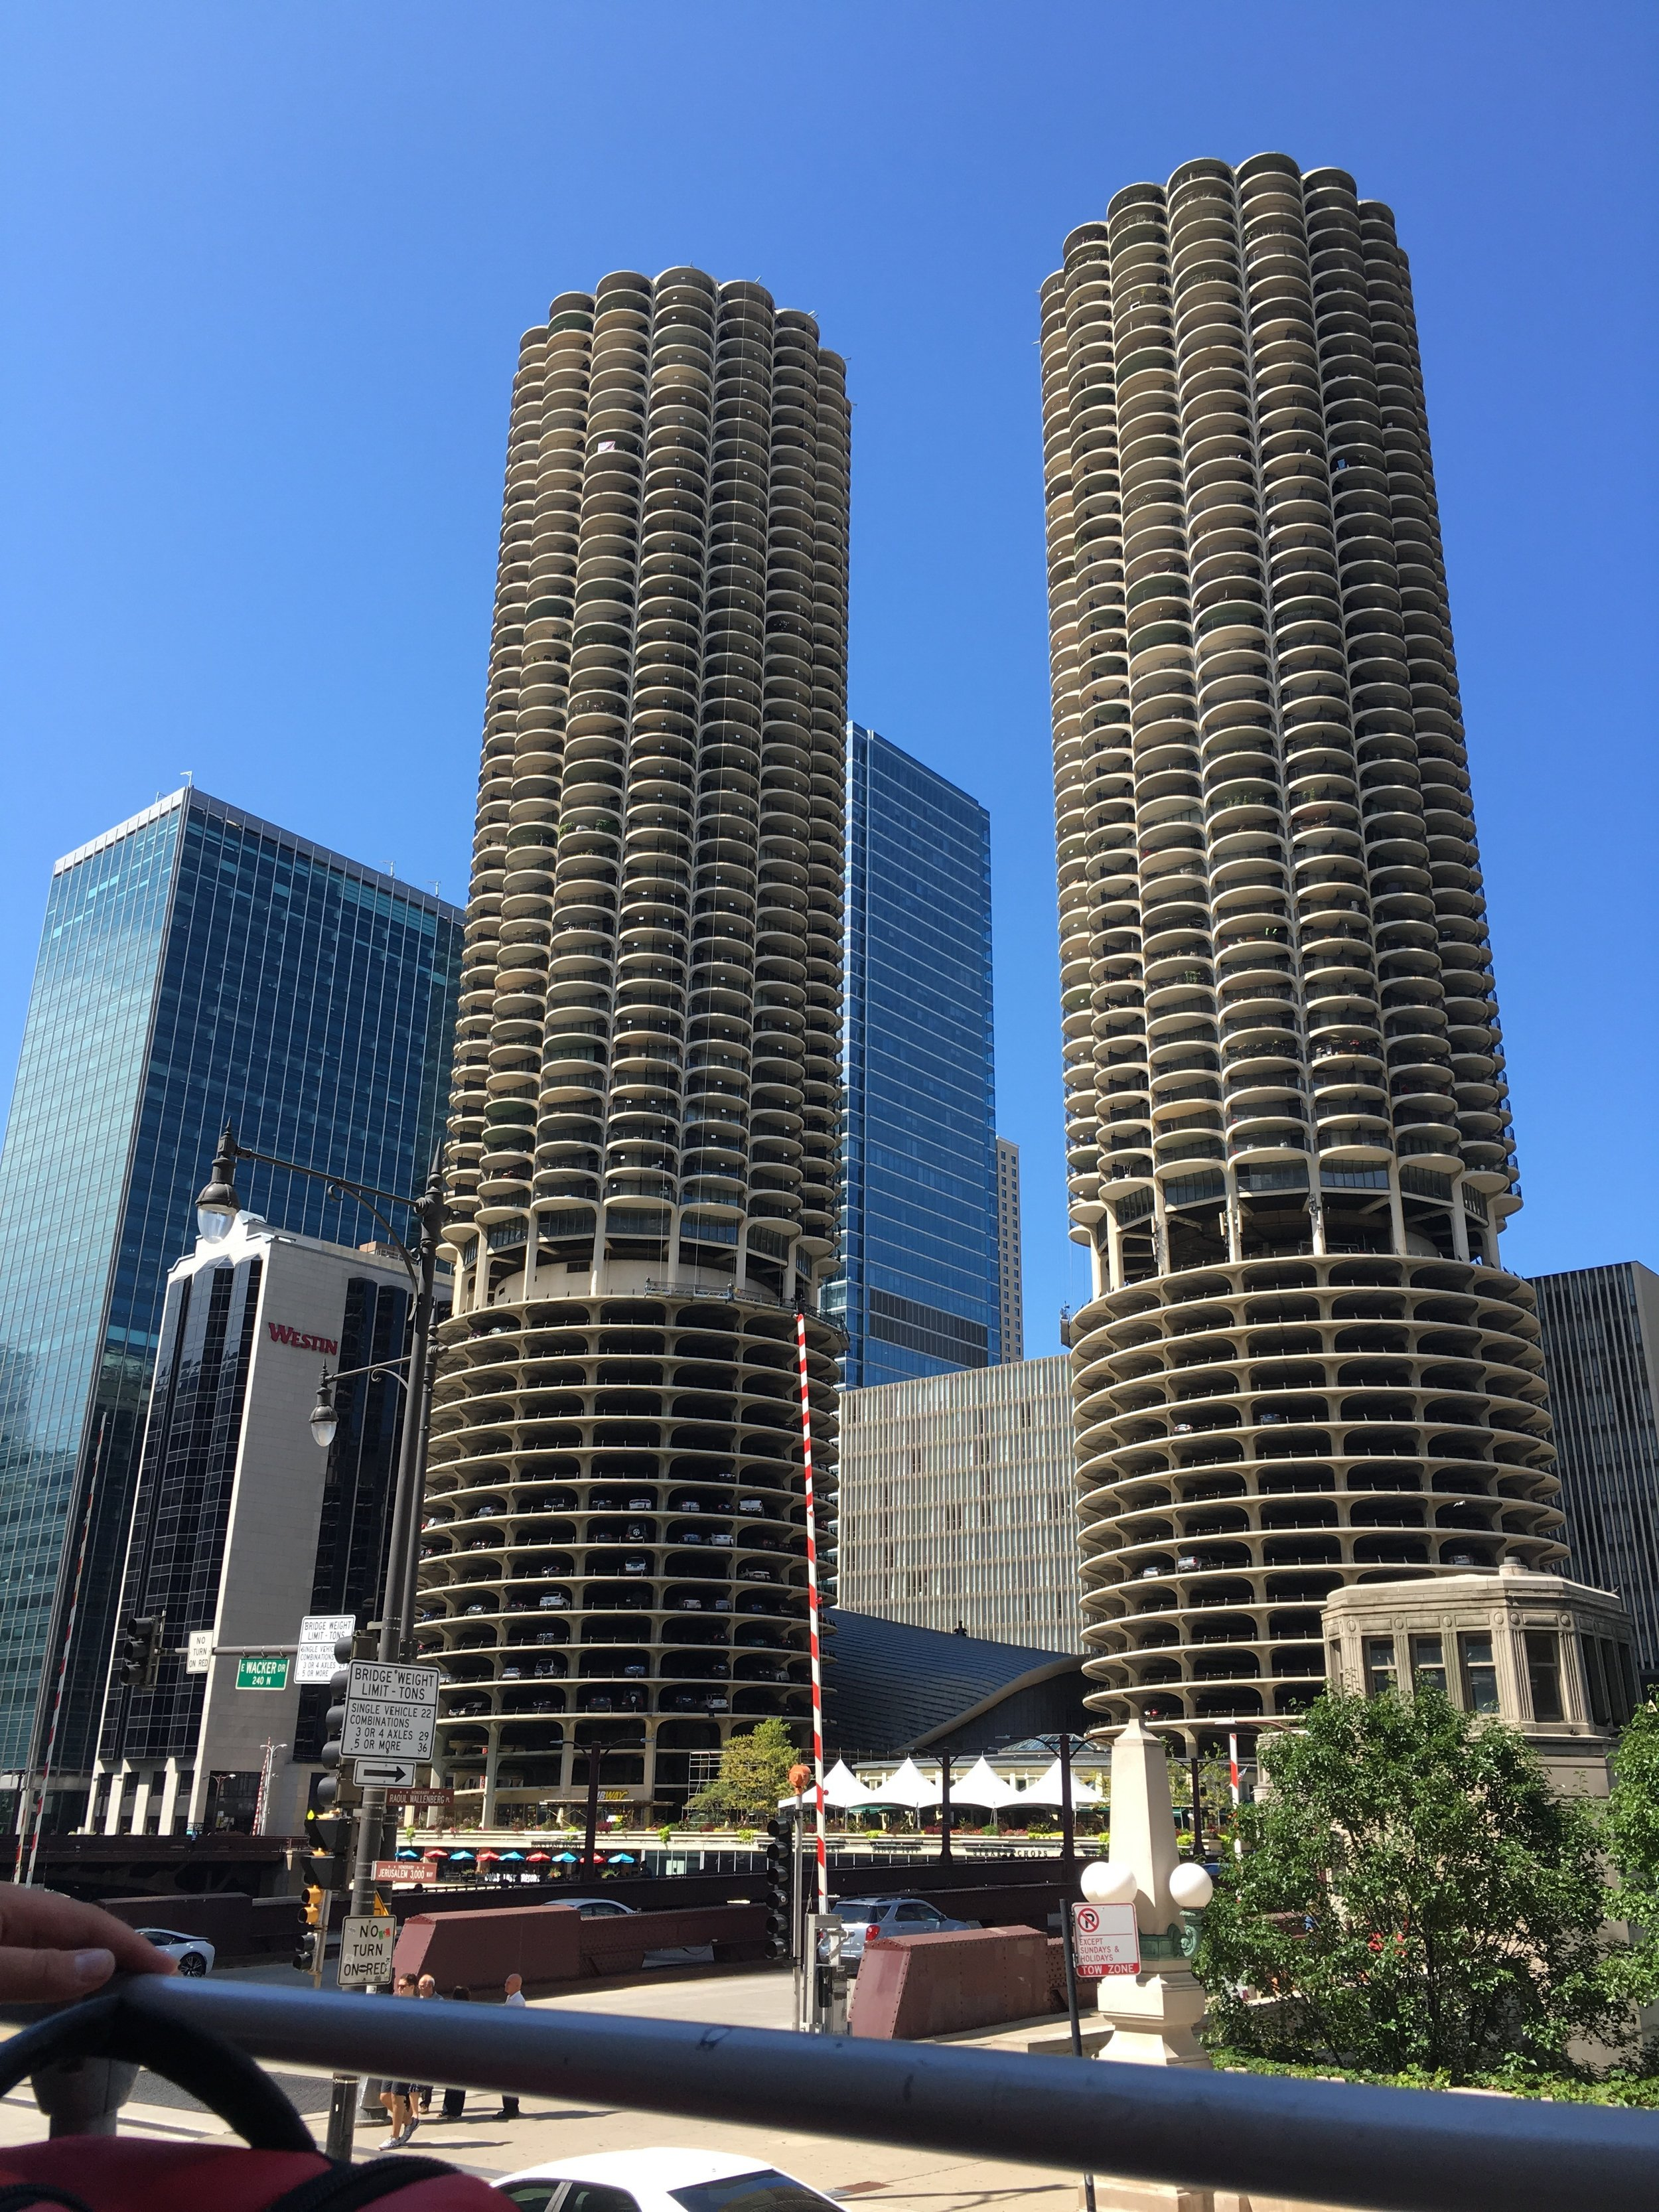 That damn Marina City! (Timmi had been racking her brain trying to remember the name of it before the tour guide clued us in!)